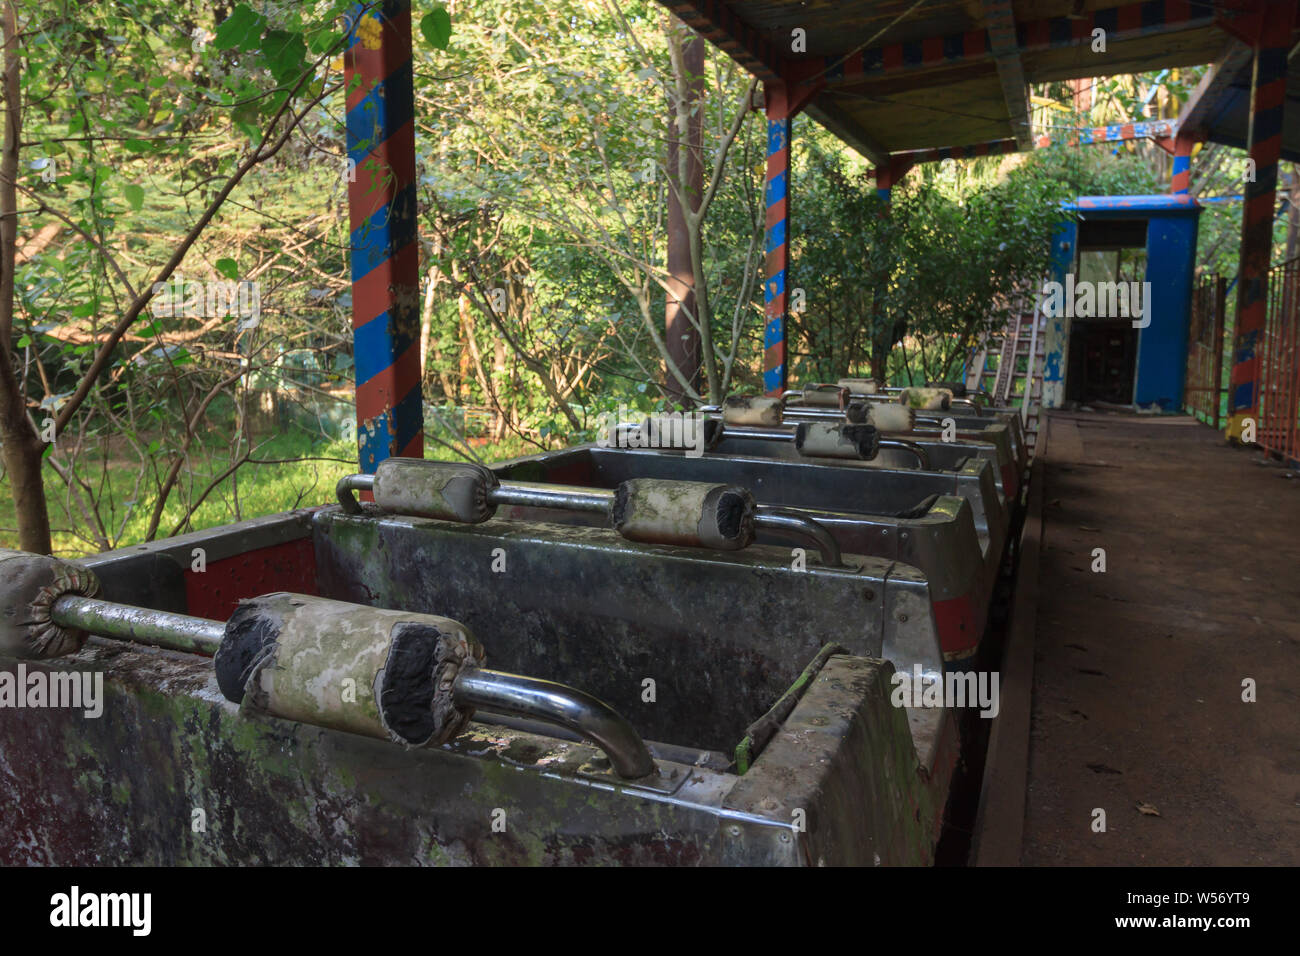 Creepy Abandoned Amusement Park In Yangon Formerly Known As Rangoon Myanmar Stock Photo Alamy